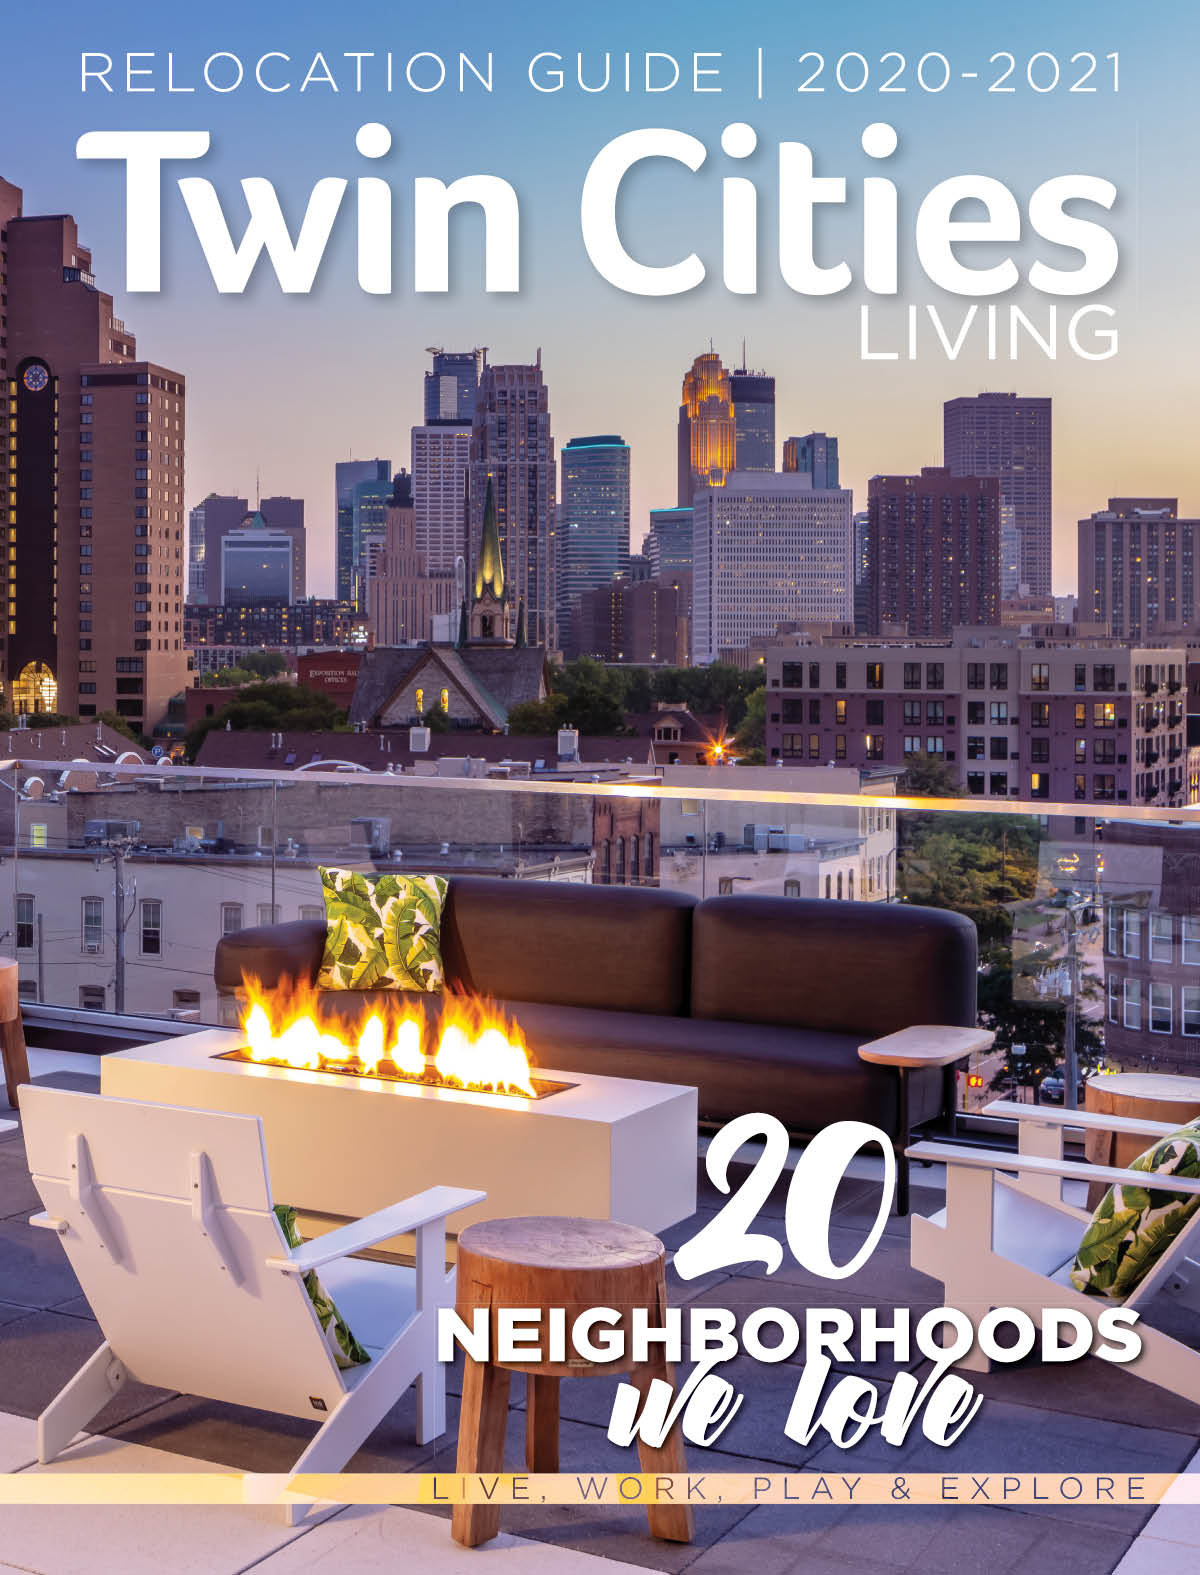 Twin Cities Living Relocation Guide Within U Of M Twin Cities 2020 2021 Calendar